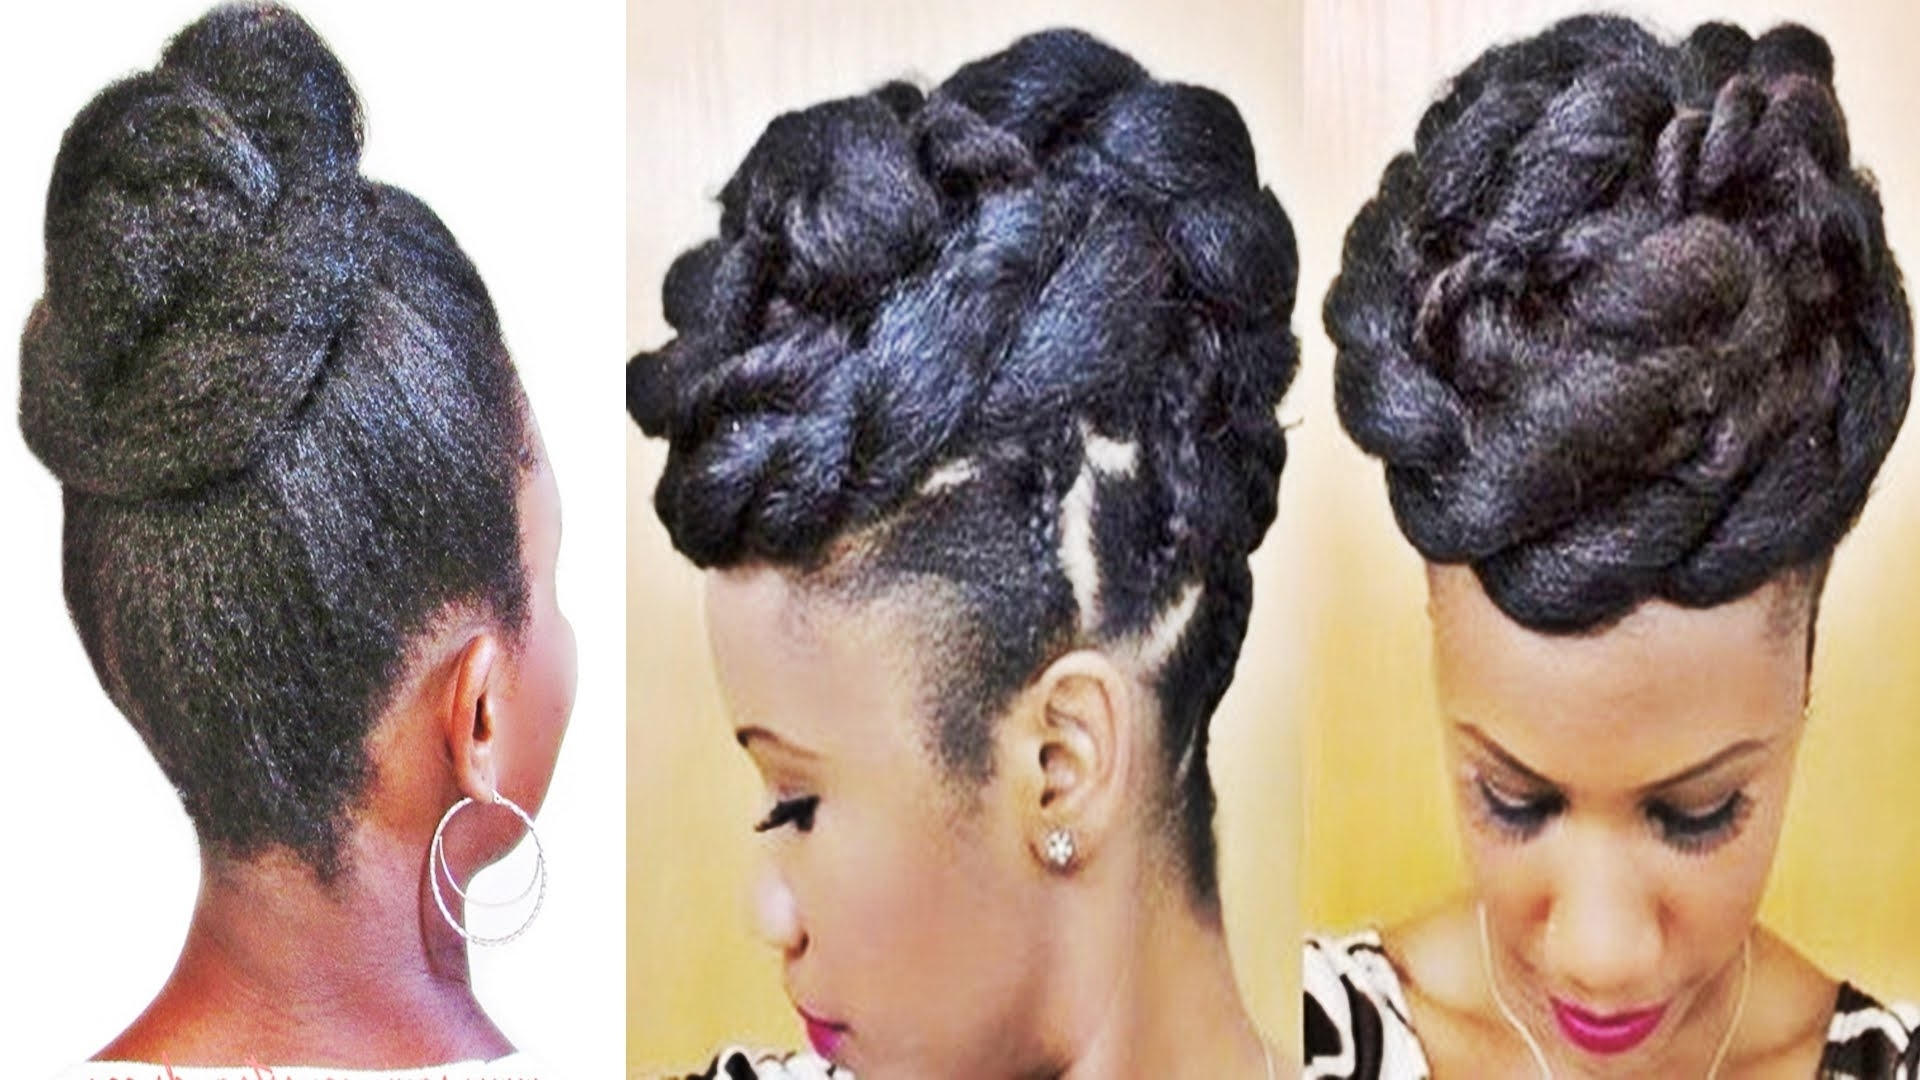 Formidable Quick Braided Hairstyles For Black Women For Your Braids Intended For Quick Braided Updo Hairstyles (View 10 of 15)